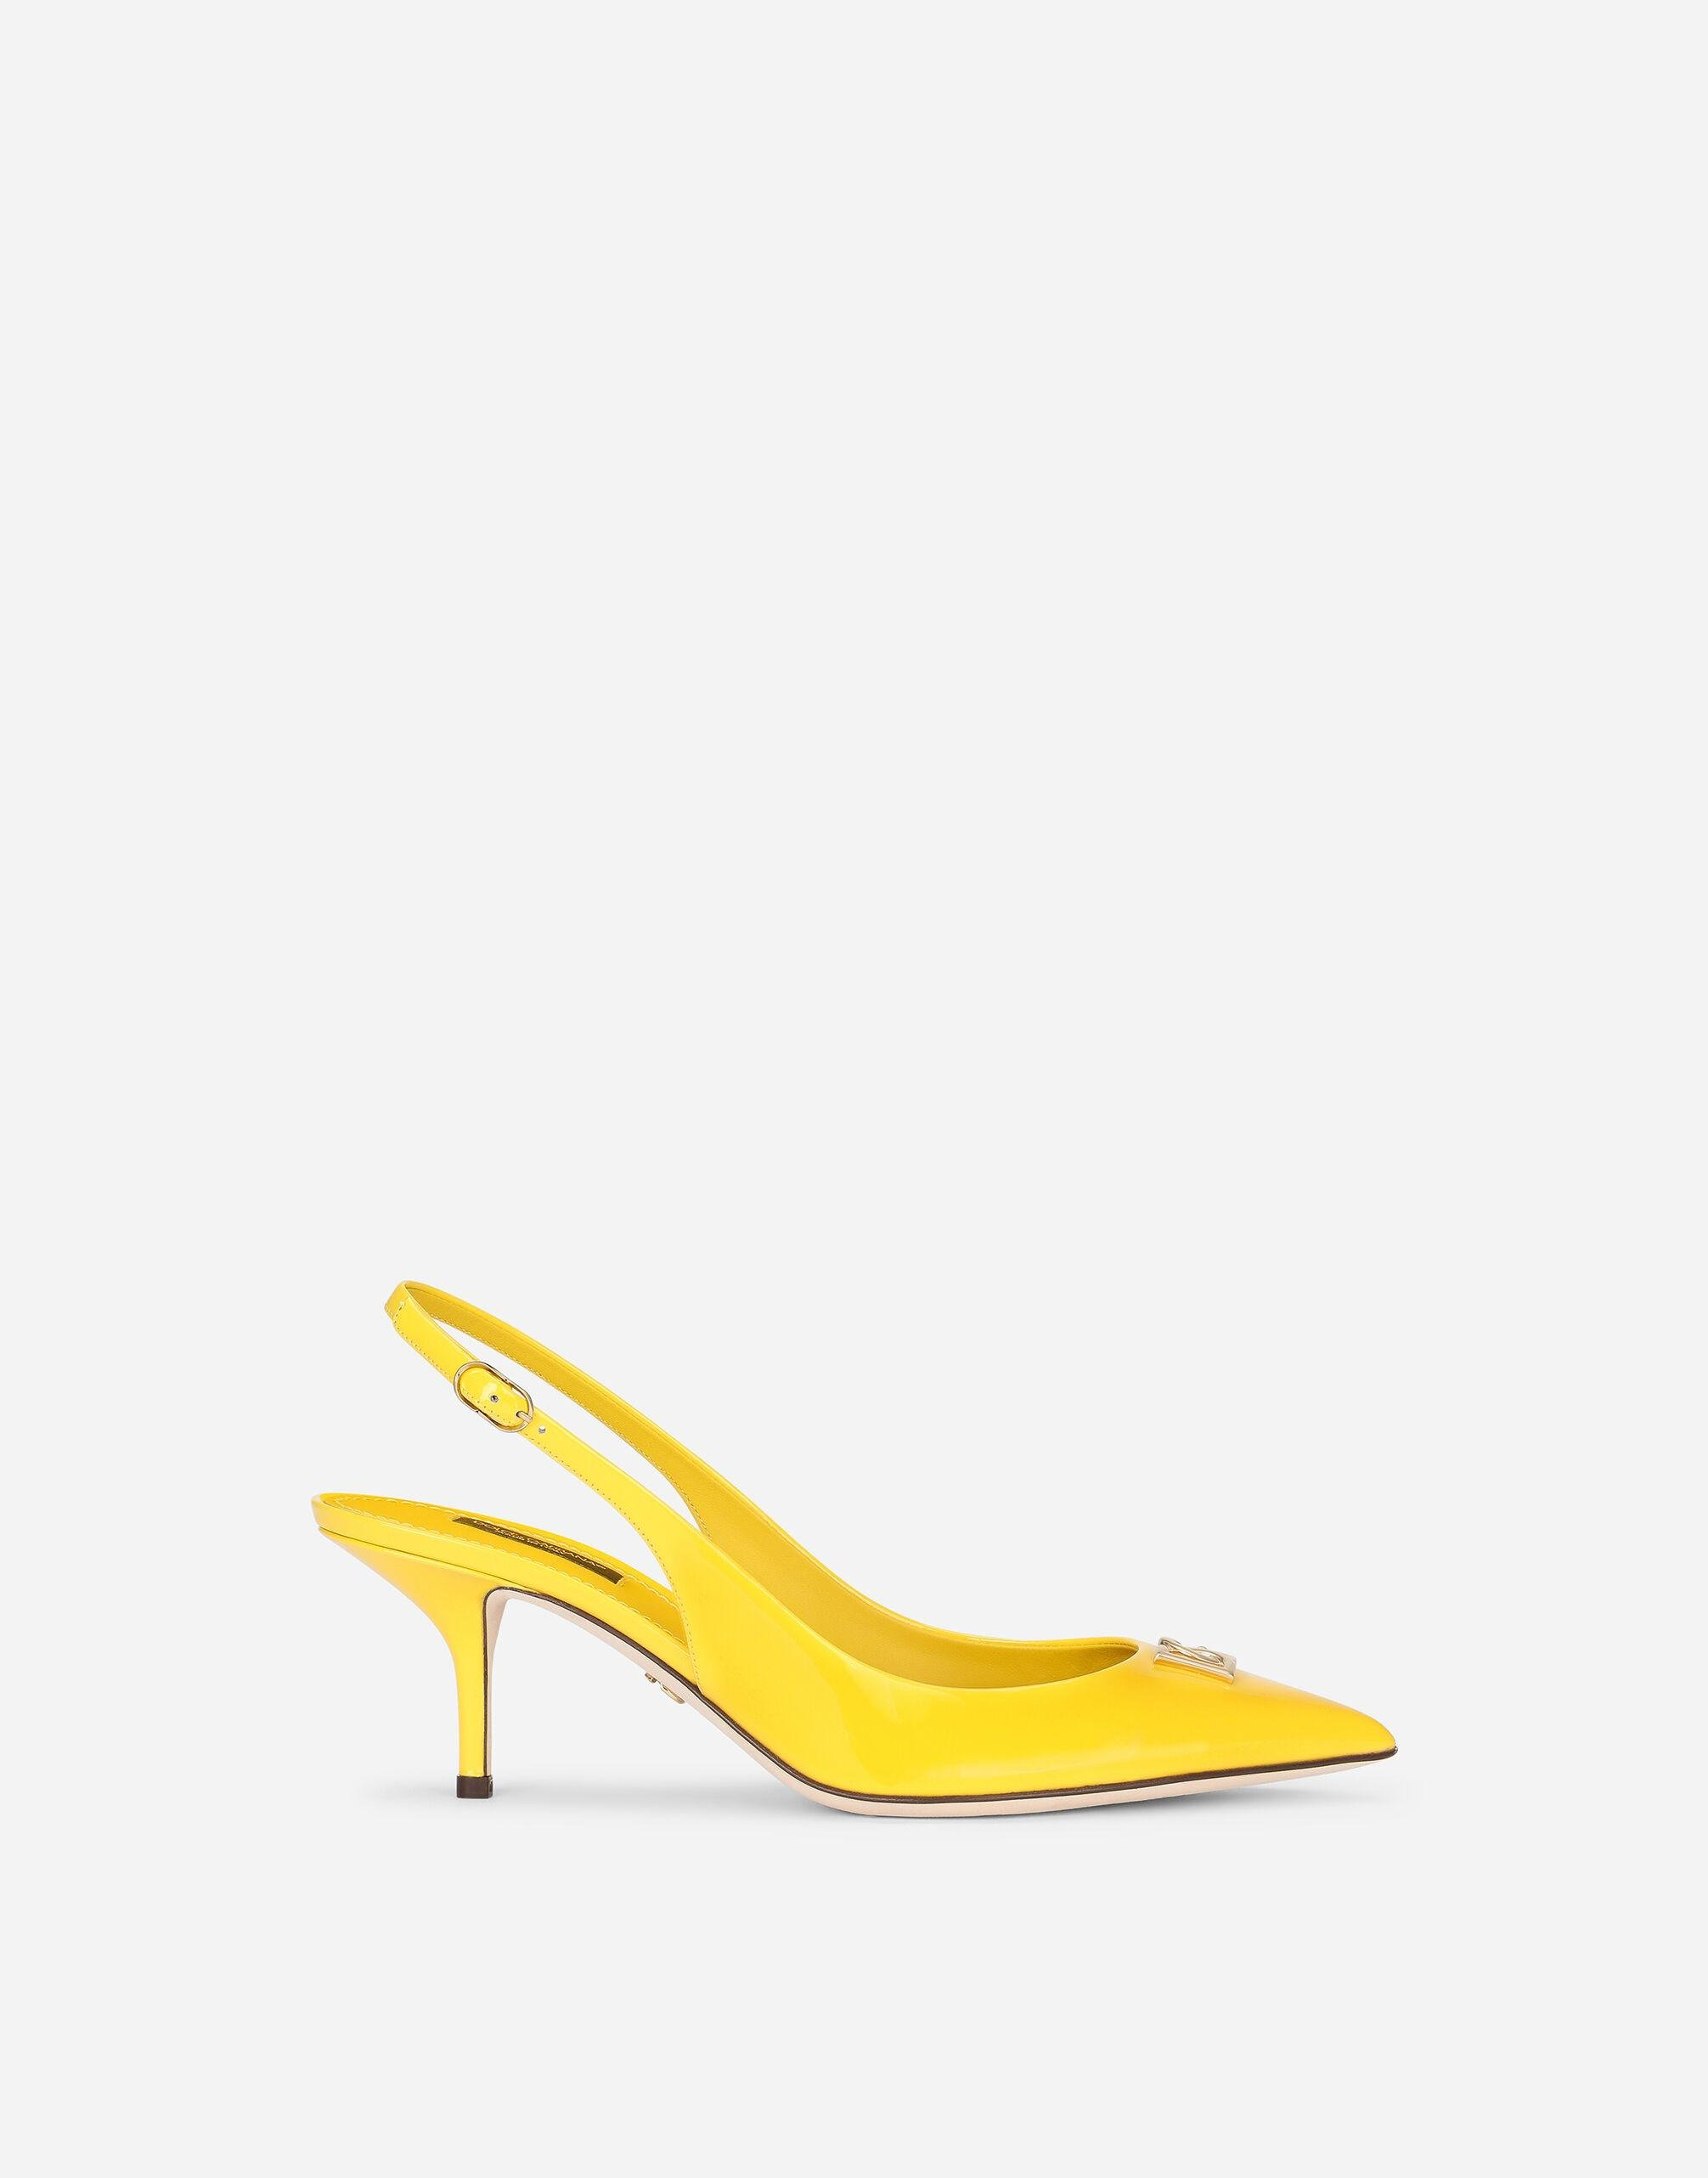 Patent leather slingbacks with DG logo